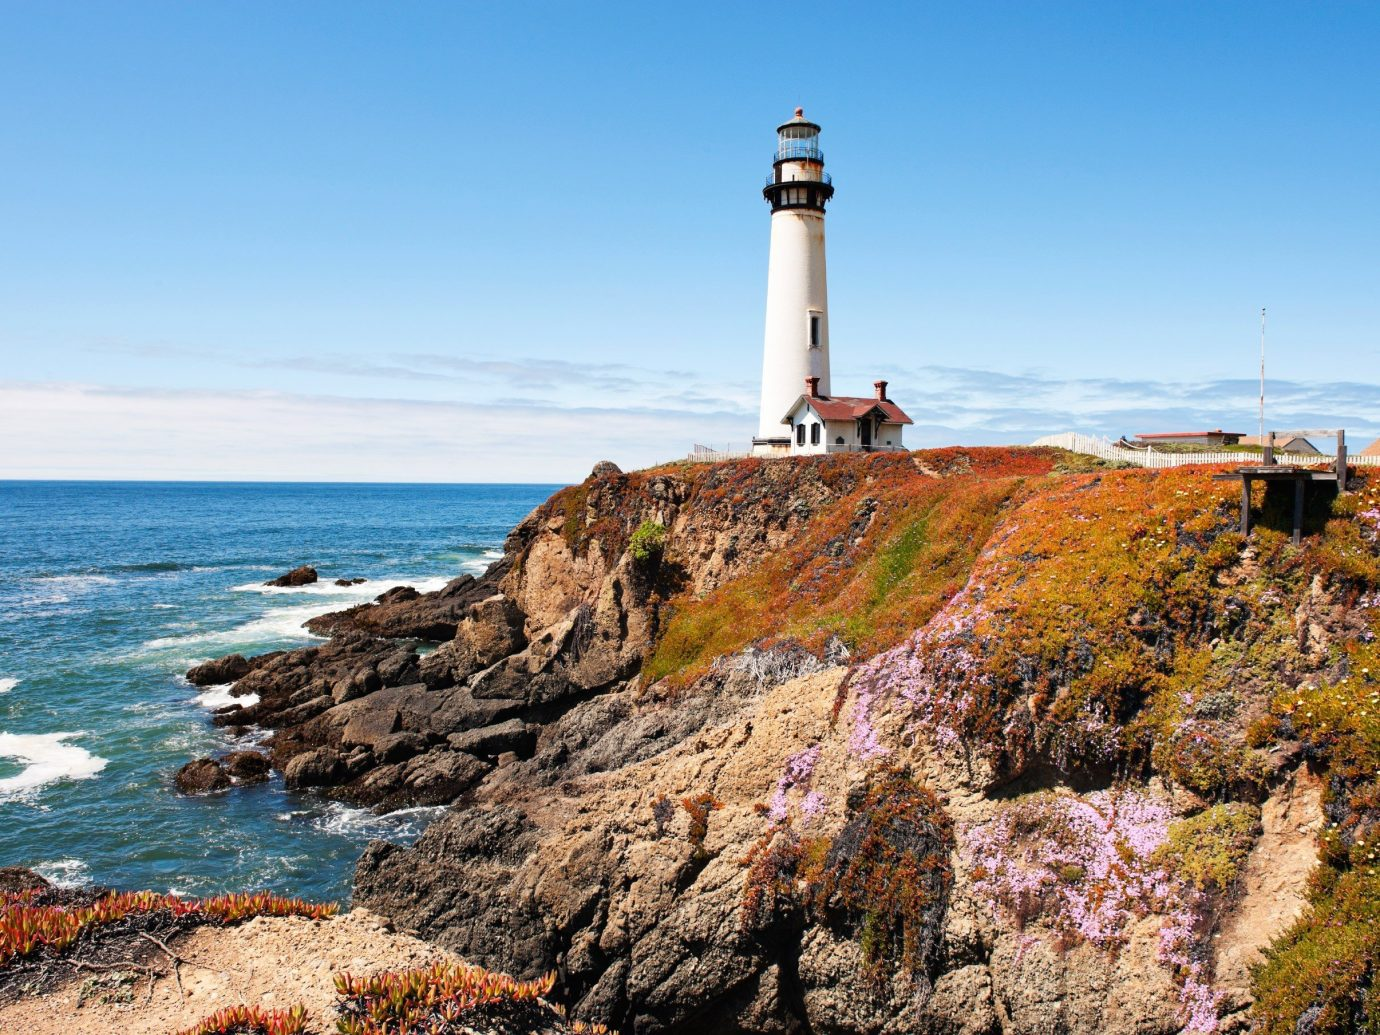 Trip Ideas sky outdoor rock water lighthouse tower Coast rocky mountain Sea shore cliff Ocean Nature cape cove terrain bay overlooking hillside Island